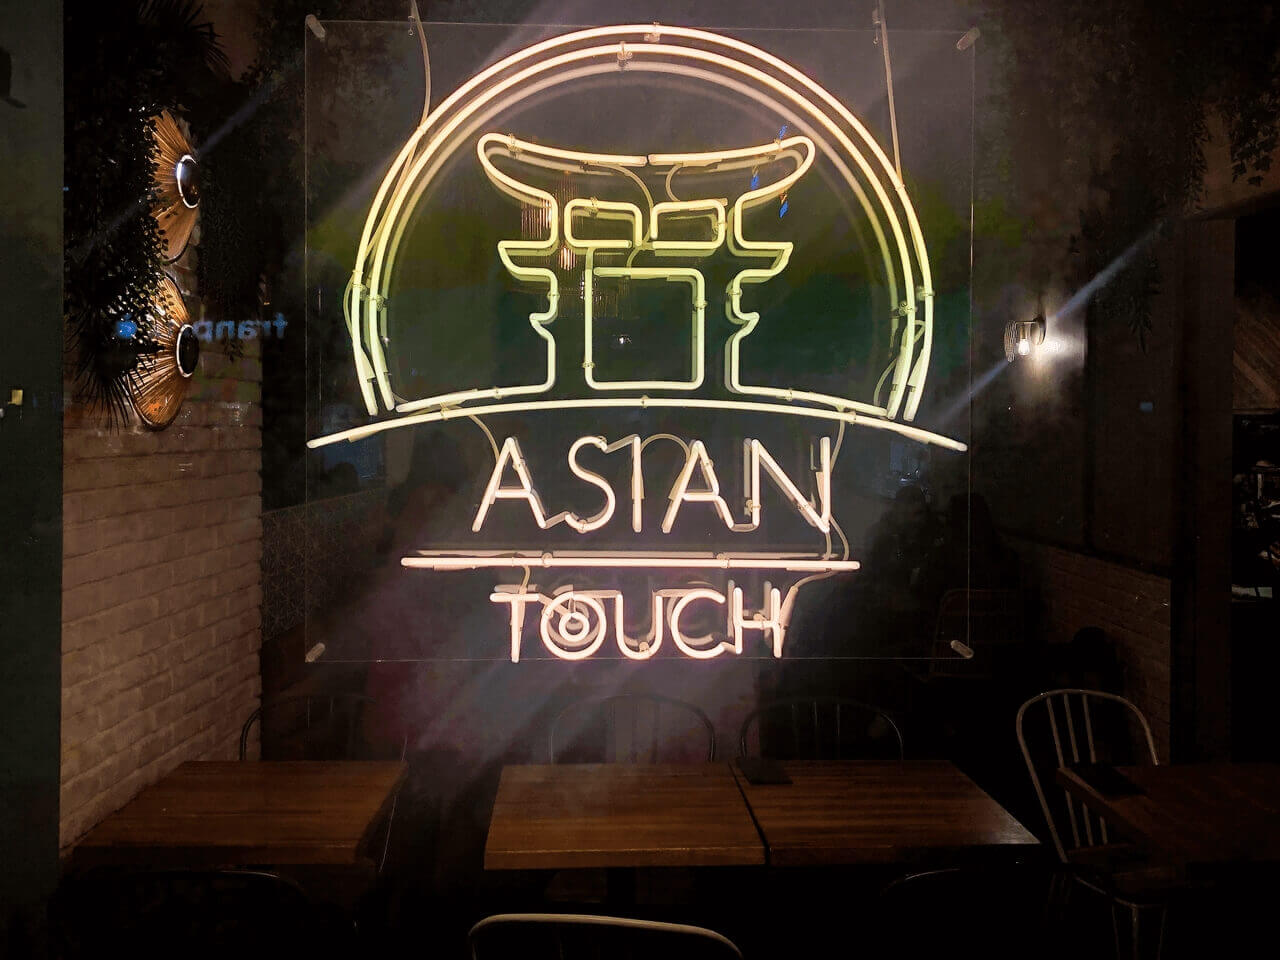 Asian Touch